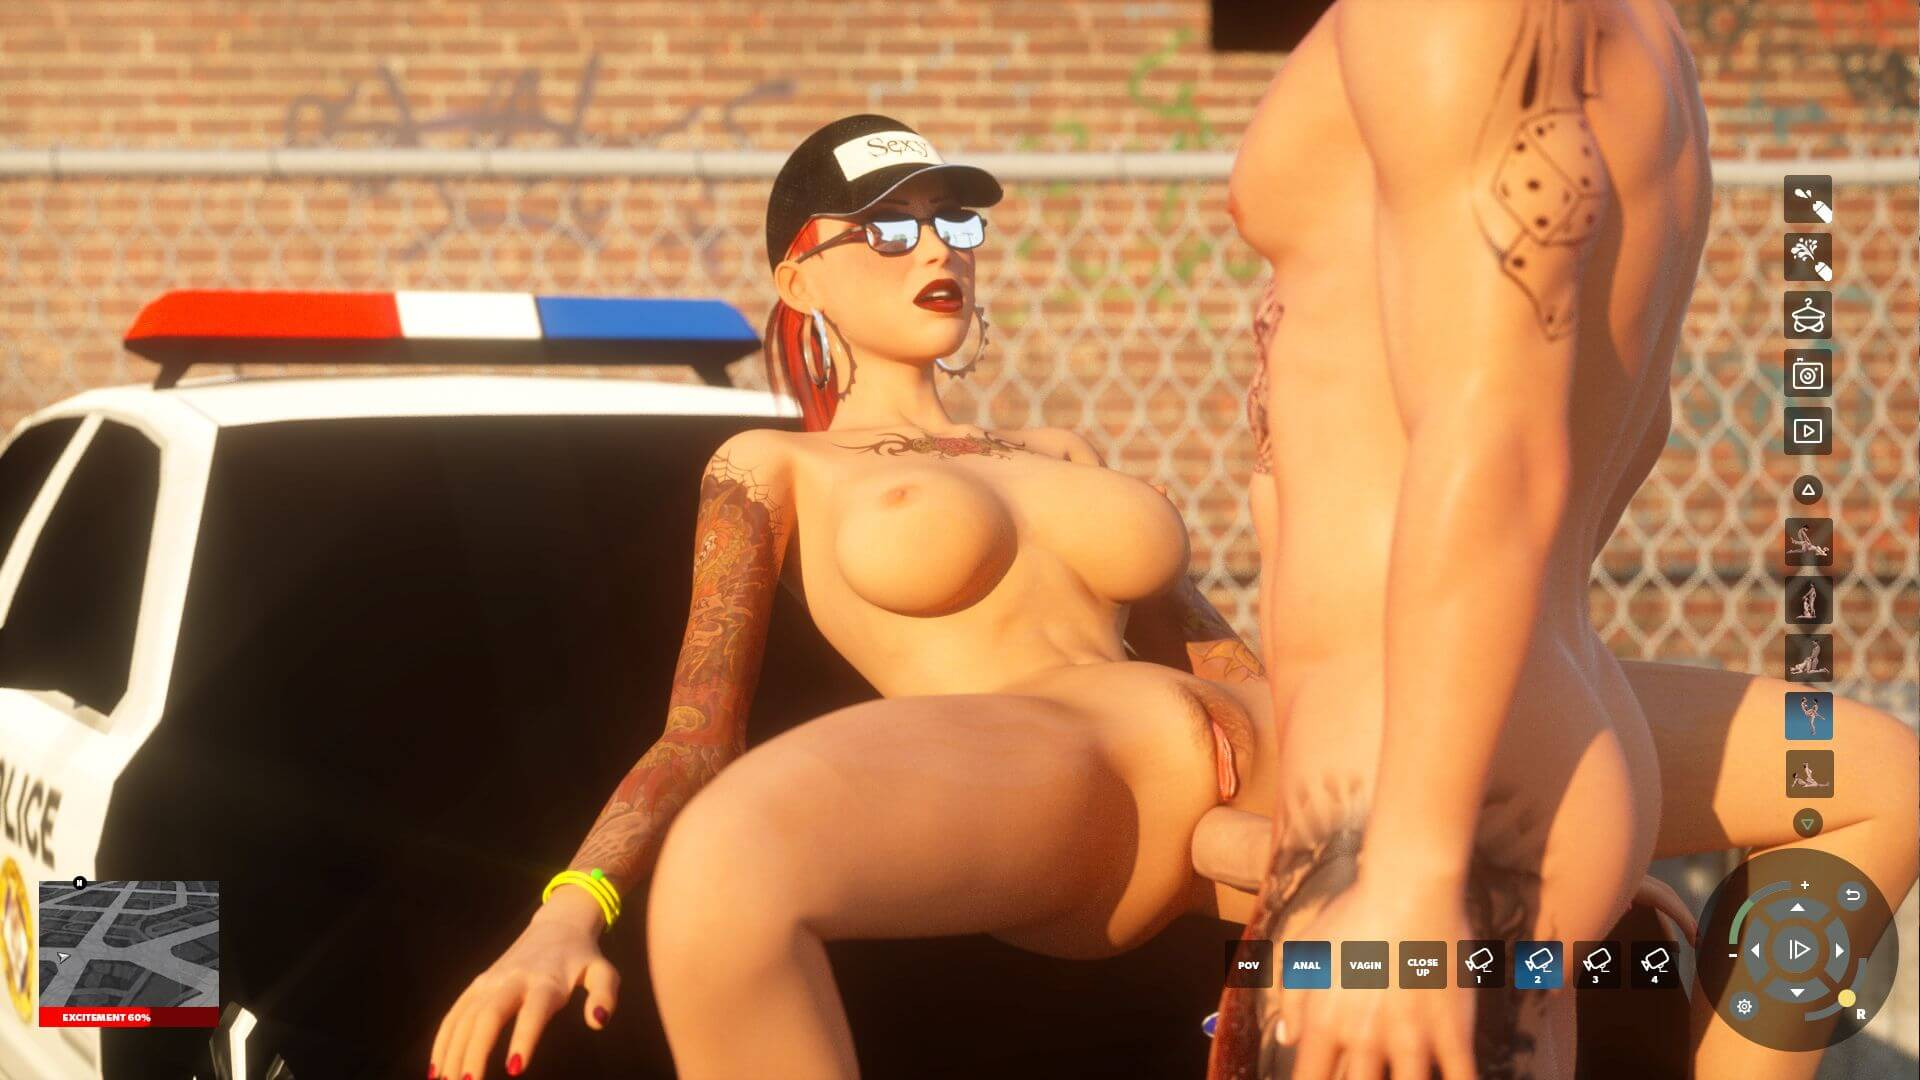 hd porn game